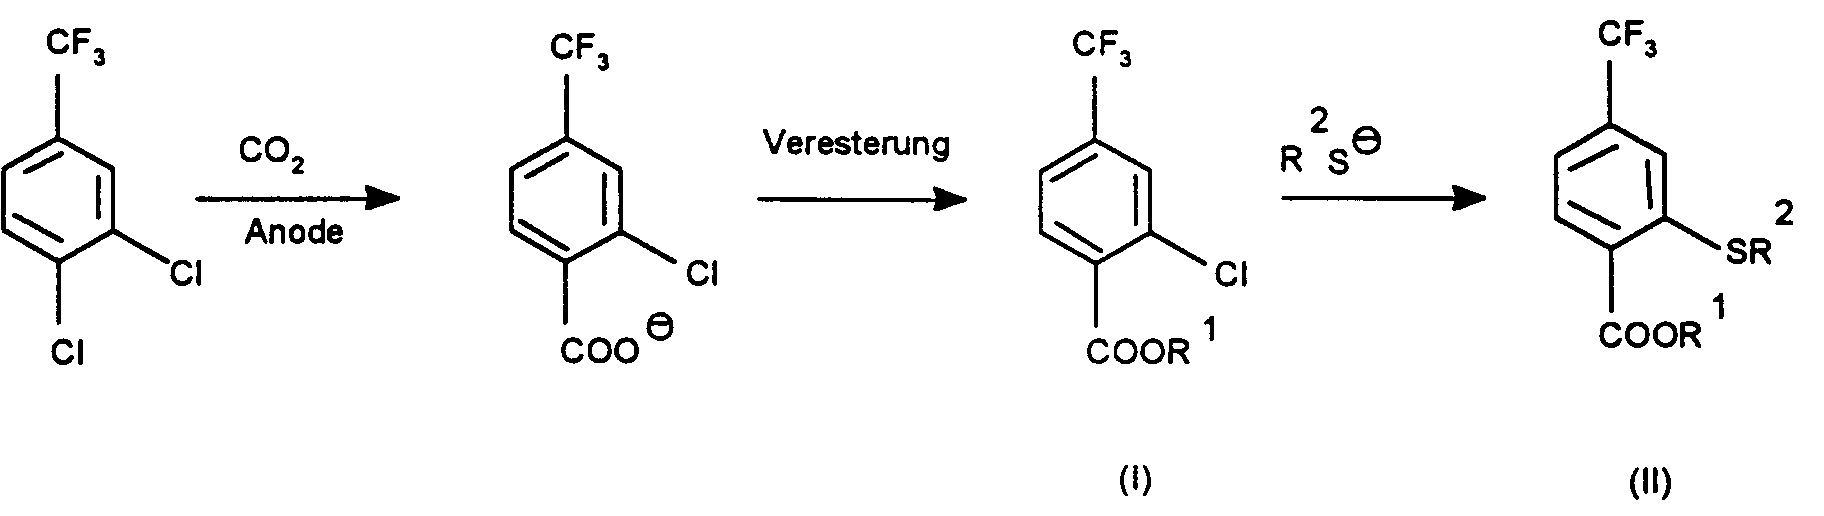 ormethyl)-benzoesureest